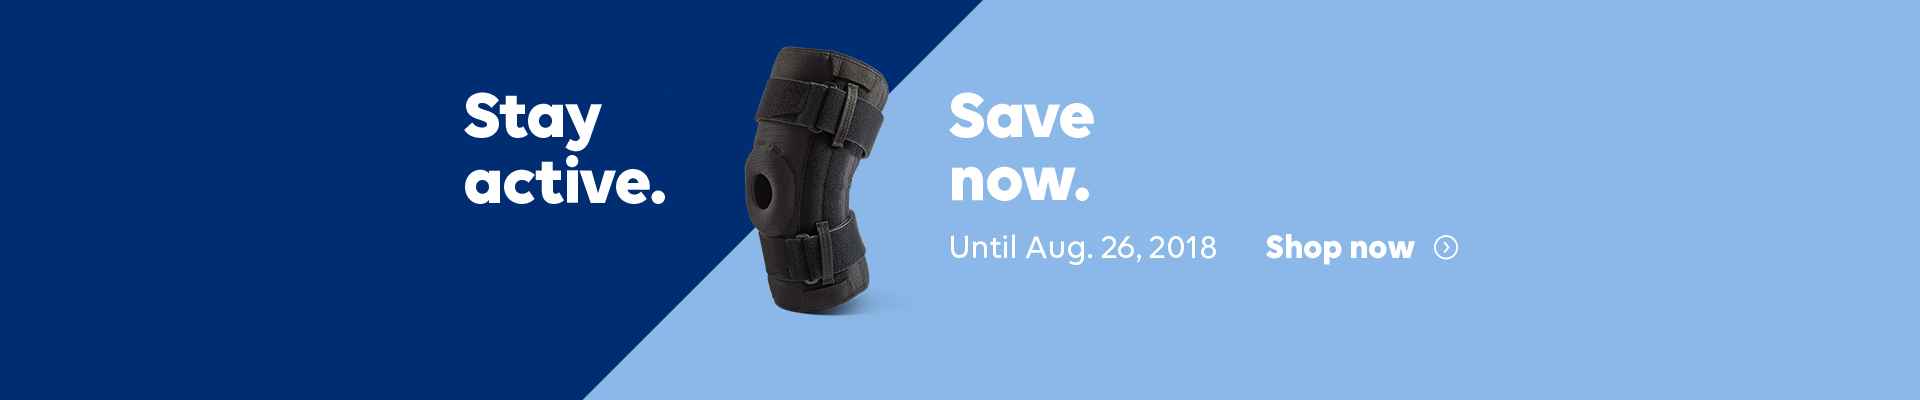 Stay active. Save now. Until August 26, 2018